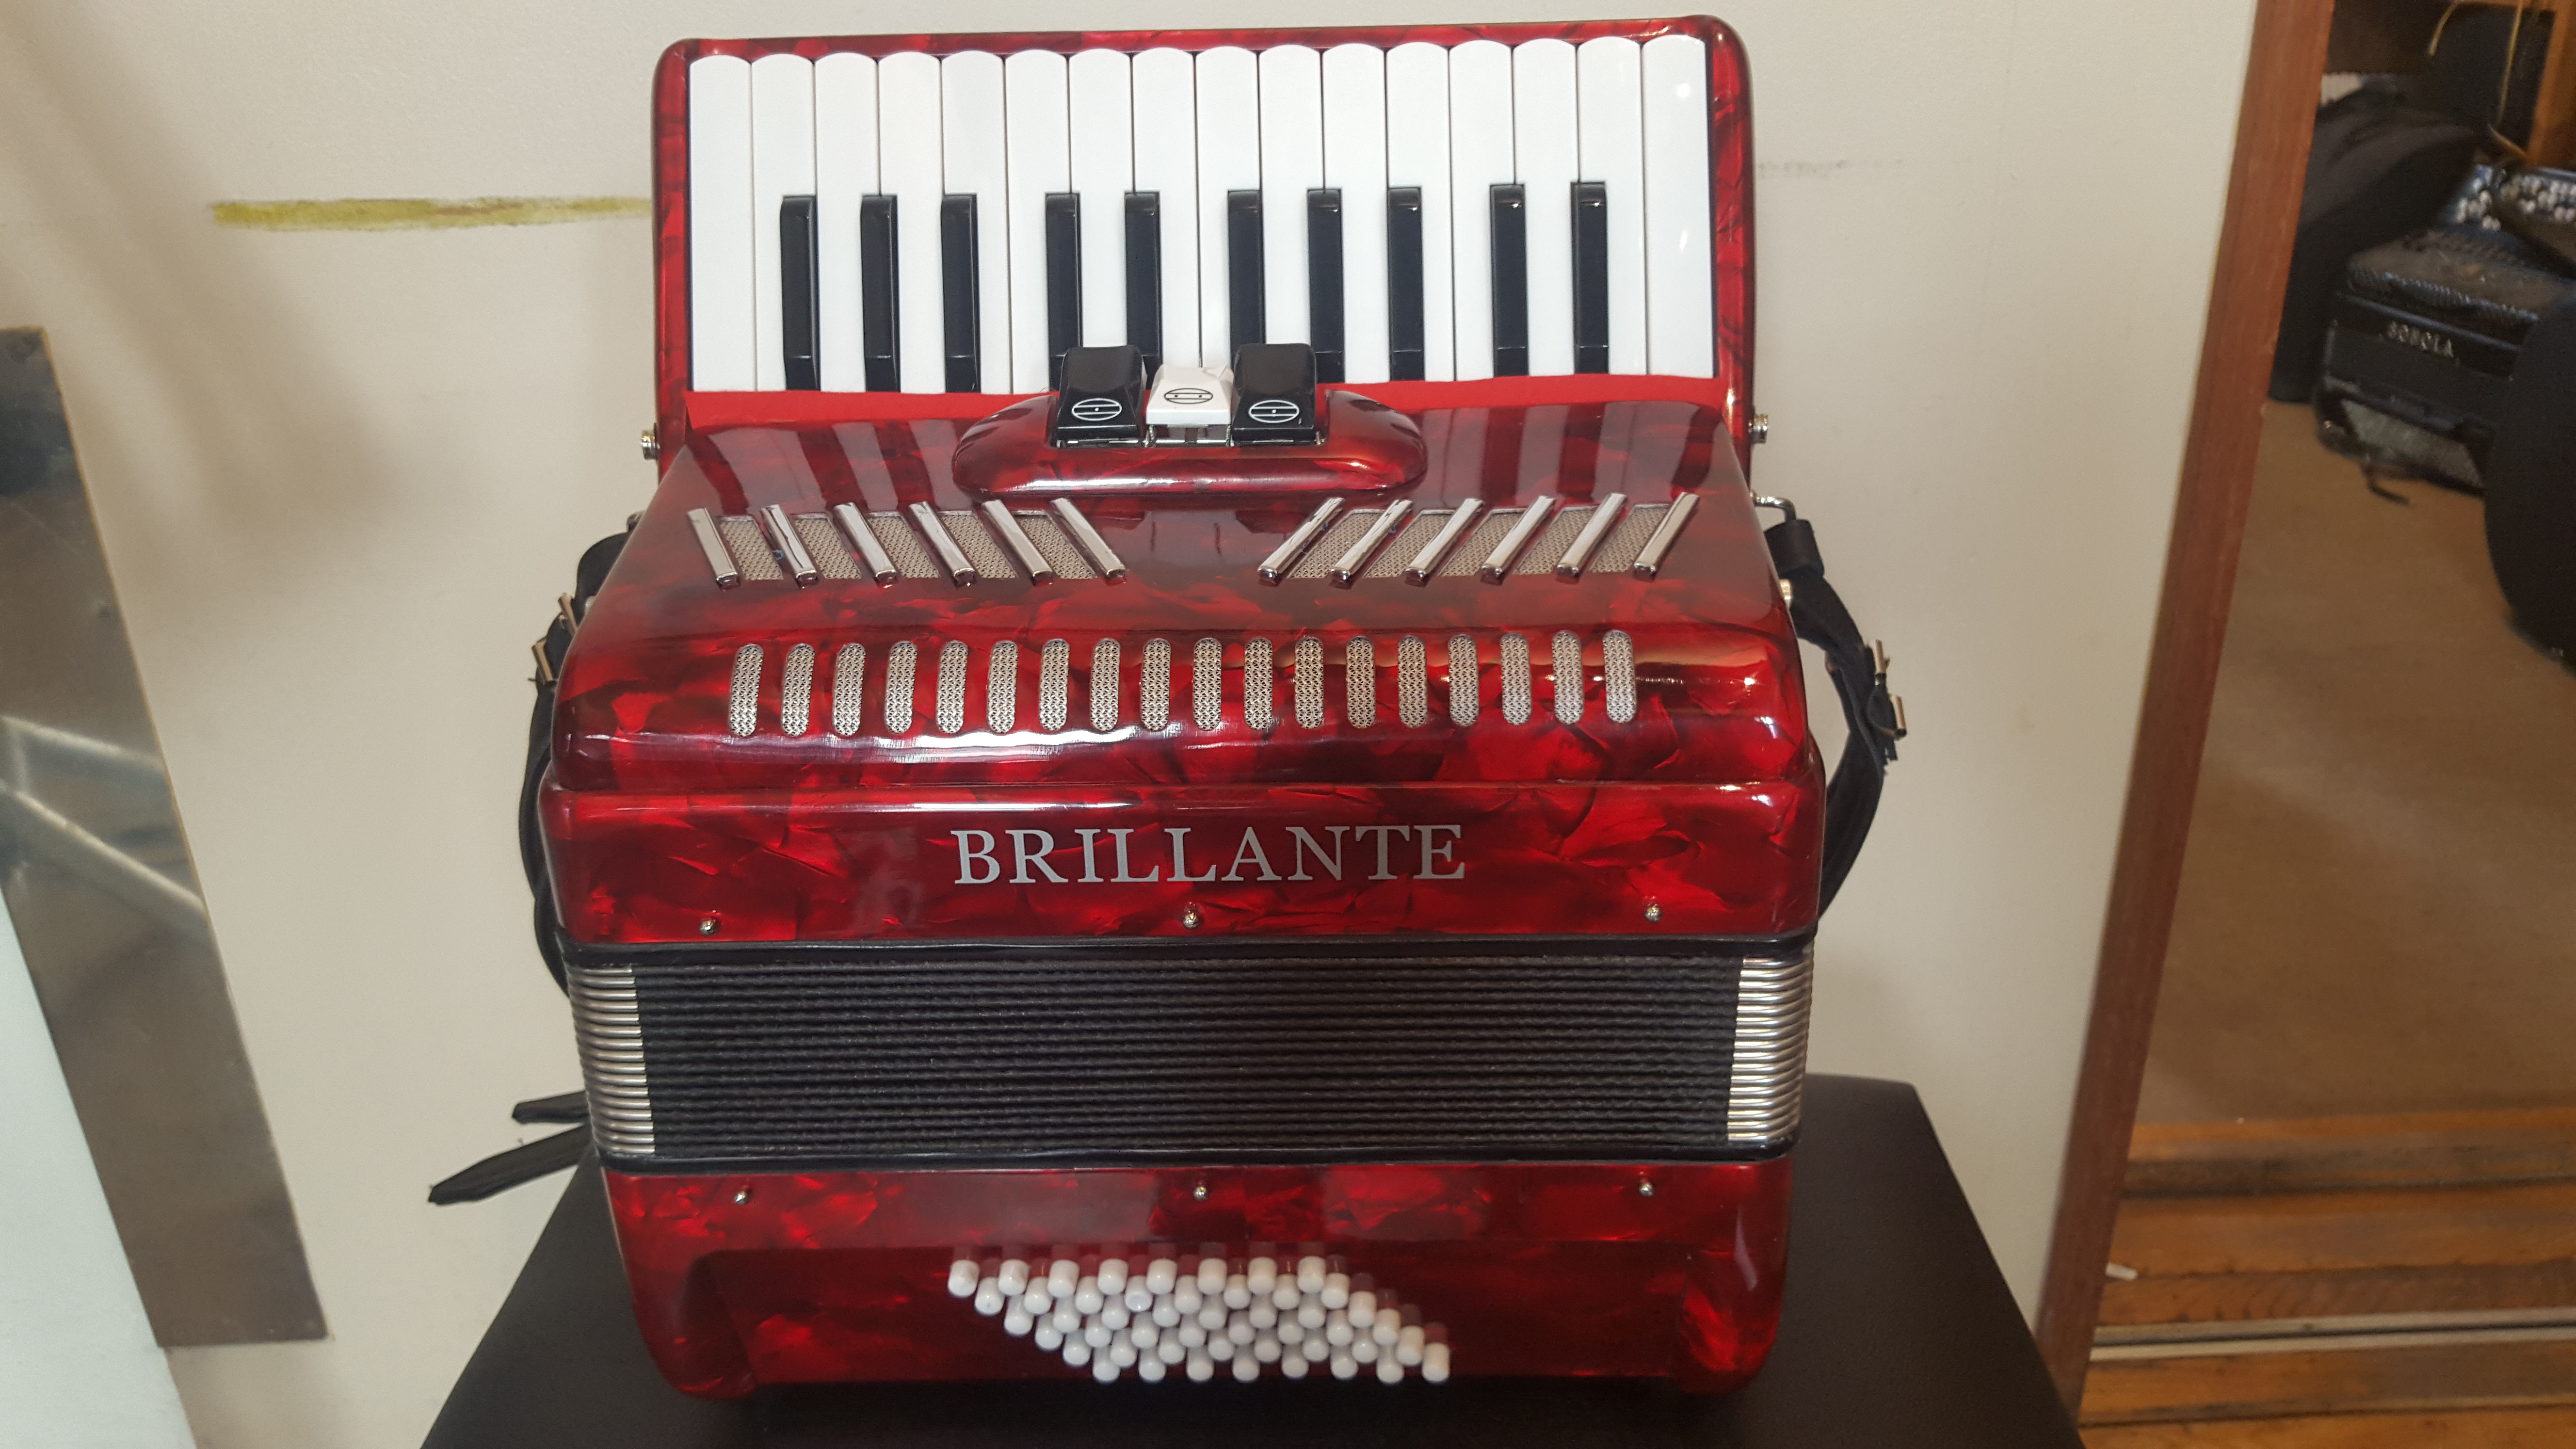 Brilliante piano 26-48